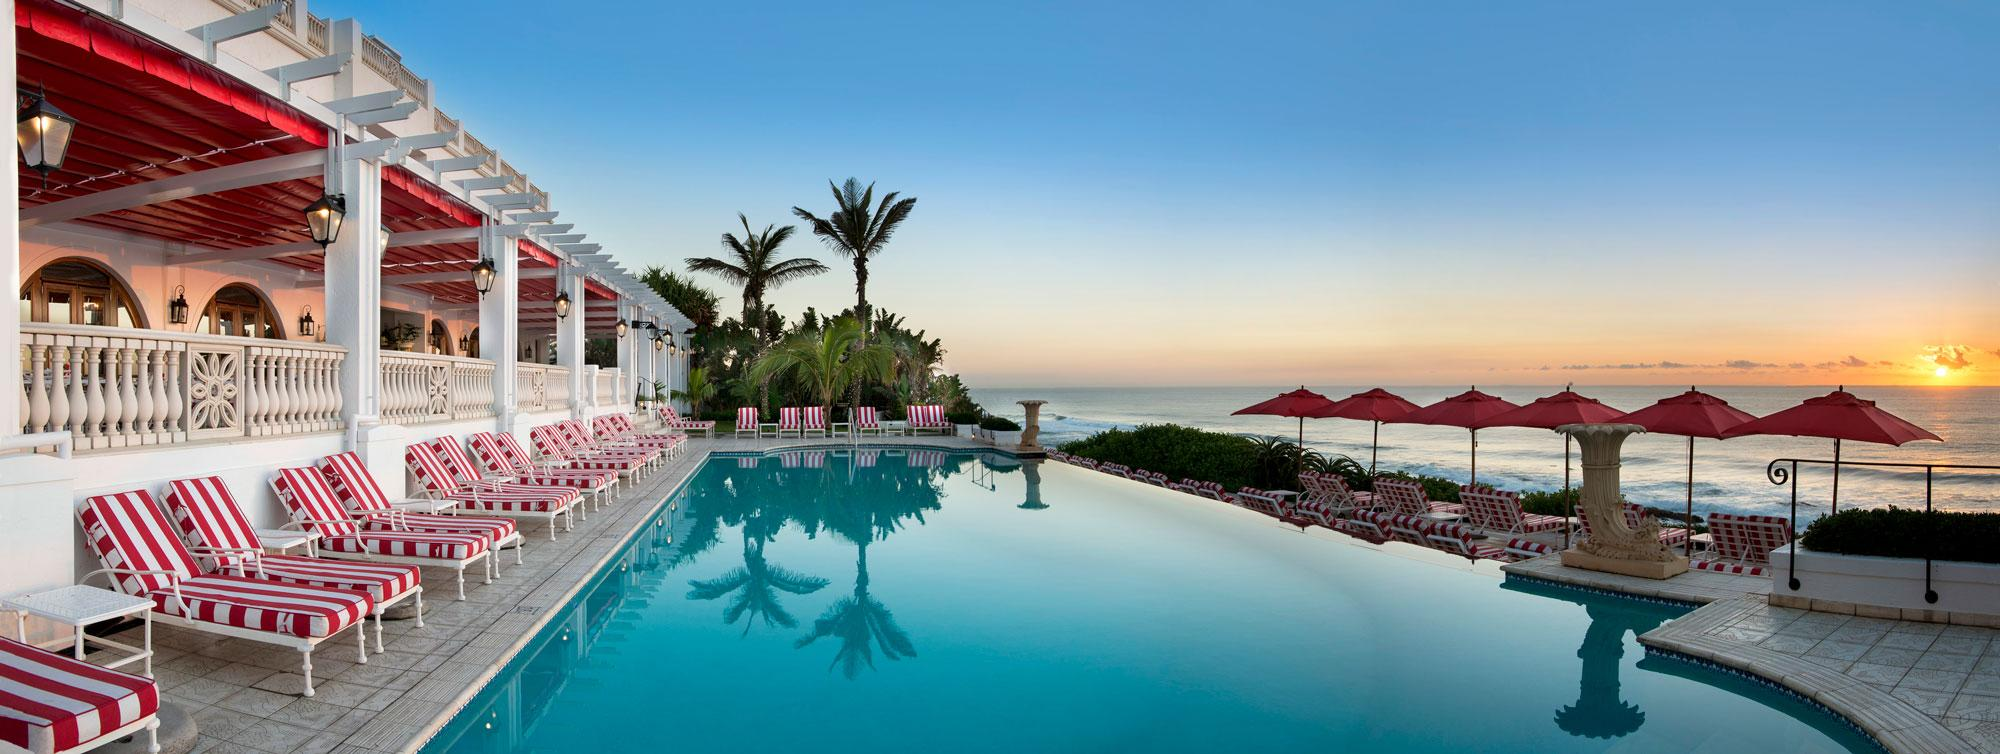 The Oyster Box Hotel's impressive main pool within impressive South Africa.